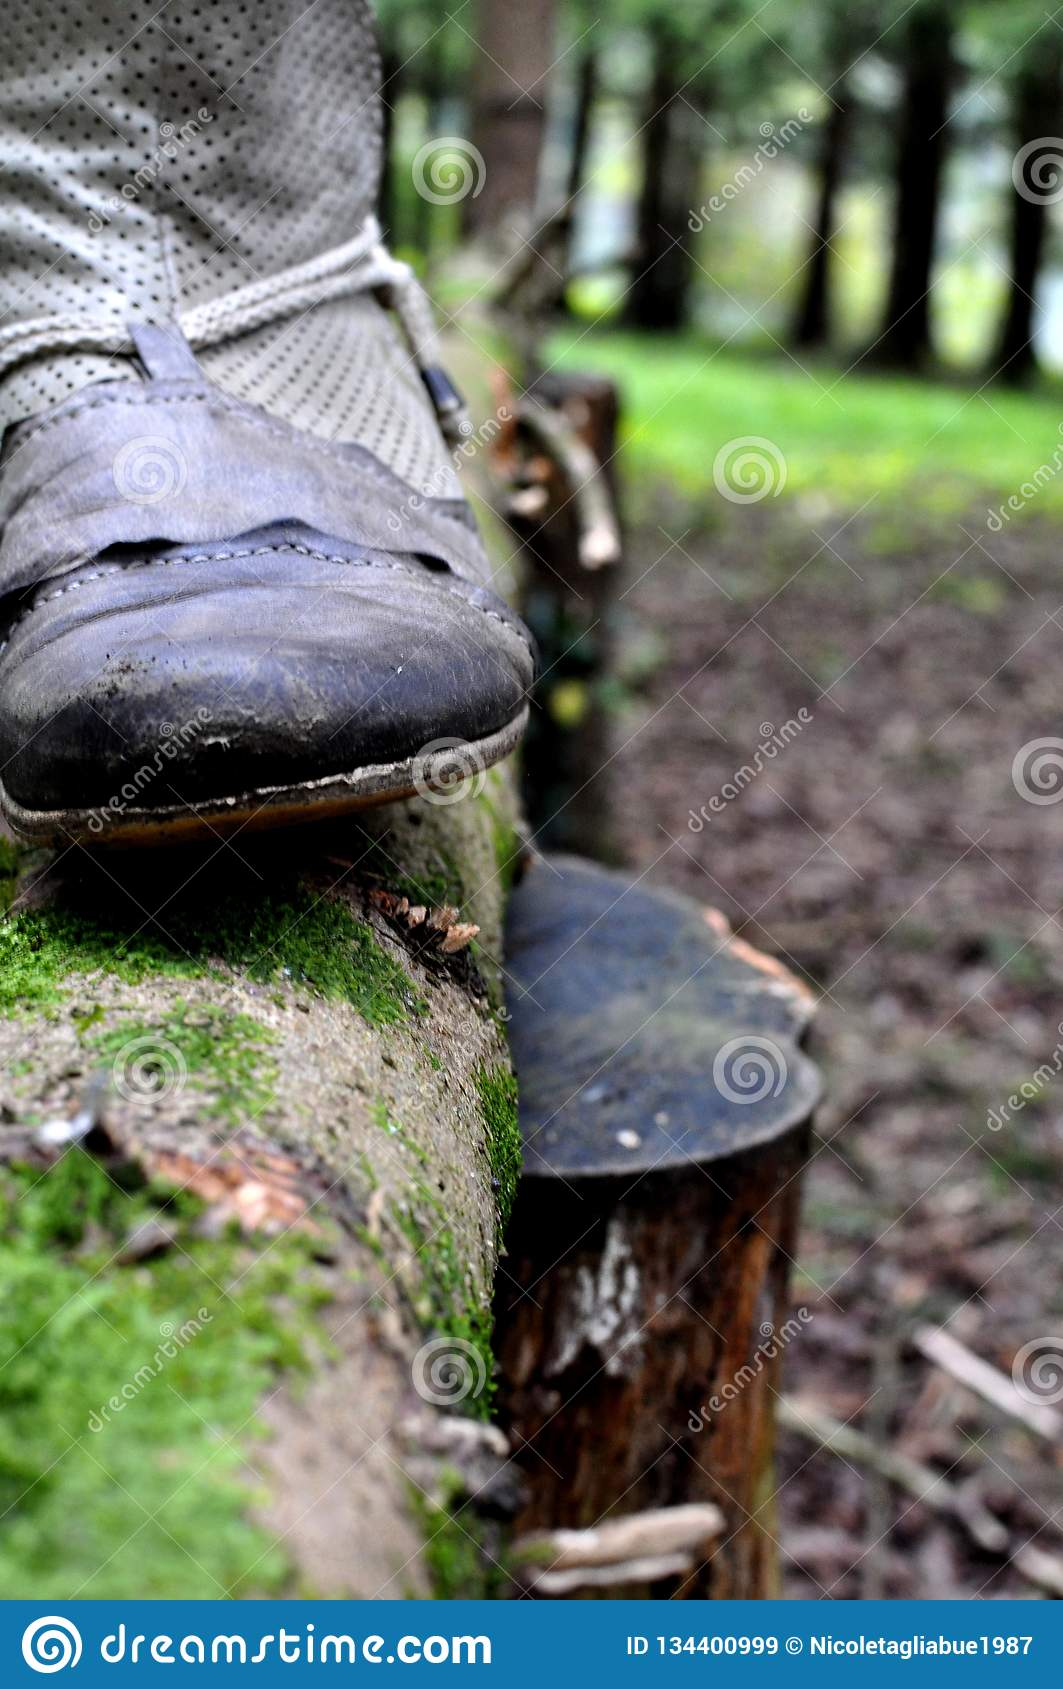 Close up of country western cowboy boot on a trunk of a tree in a green wood - vintage retro style